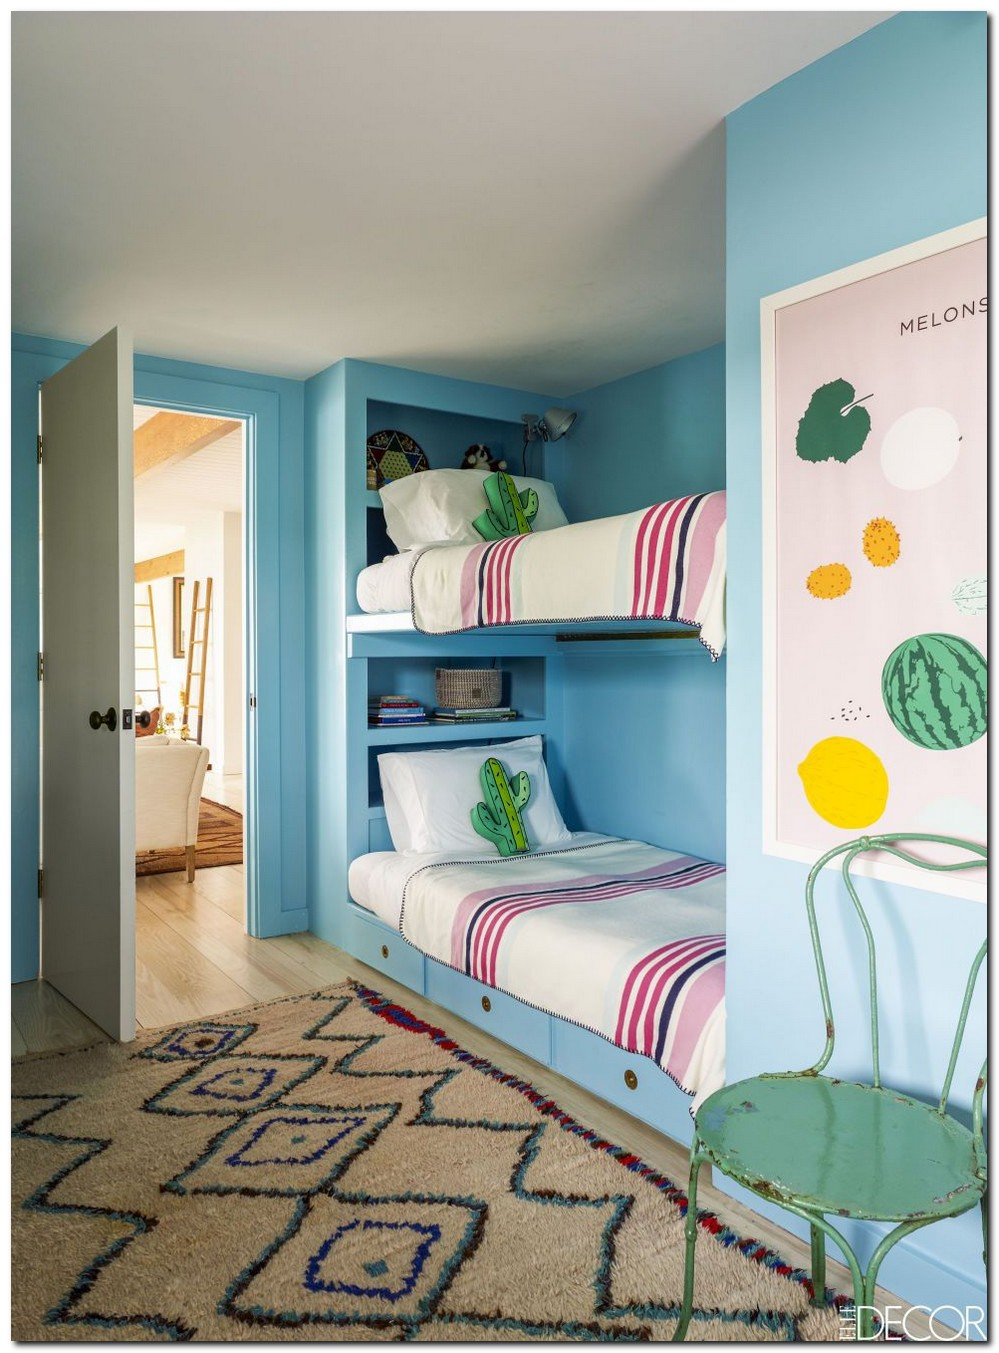 Beds for children choosing bunk beds for kids 3